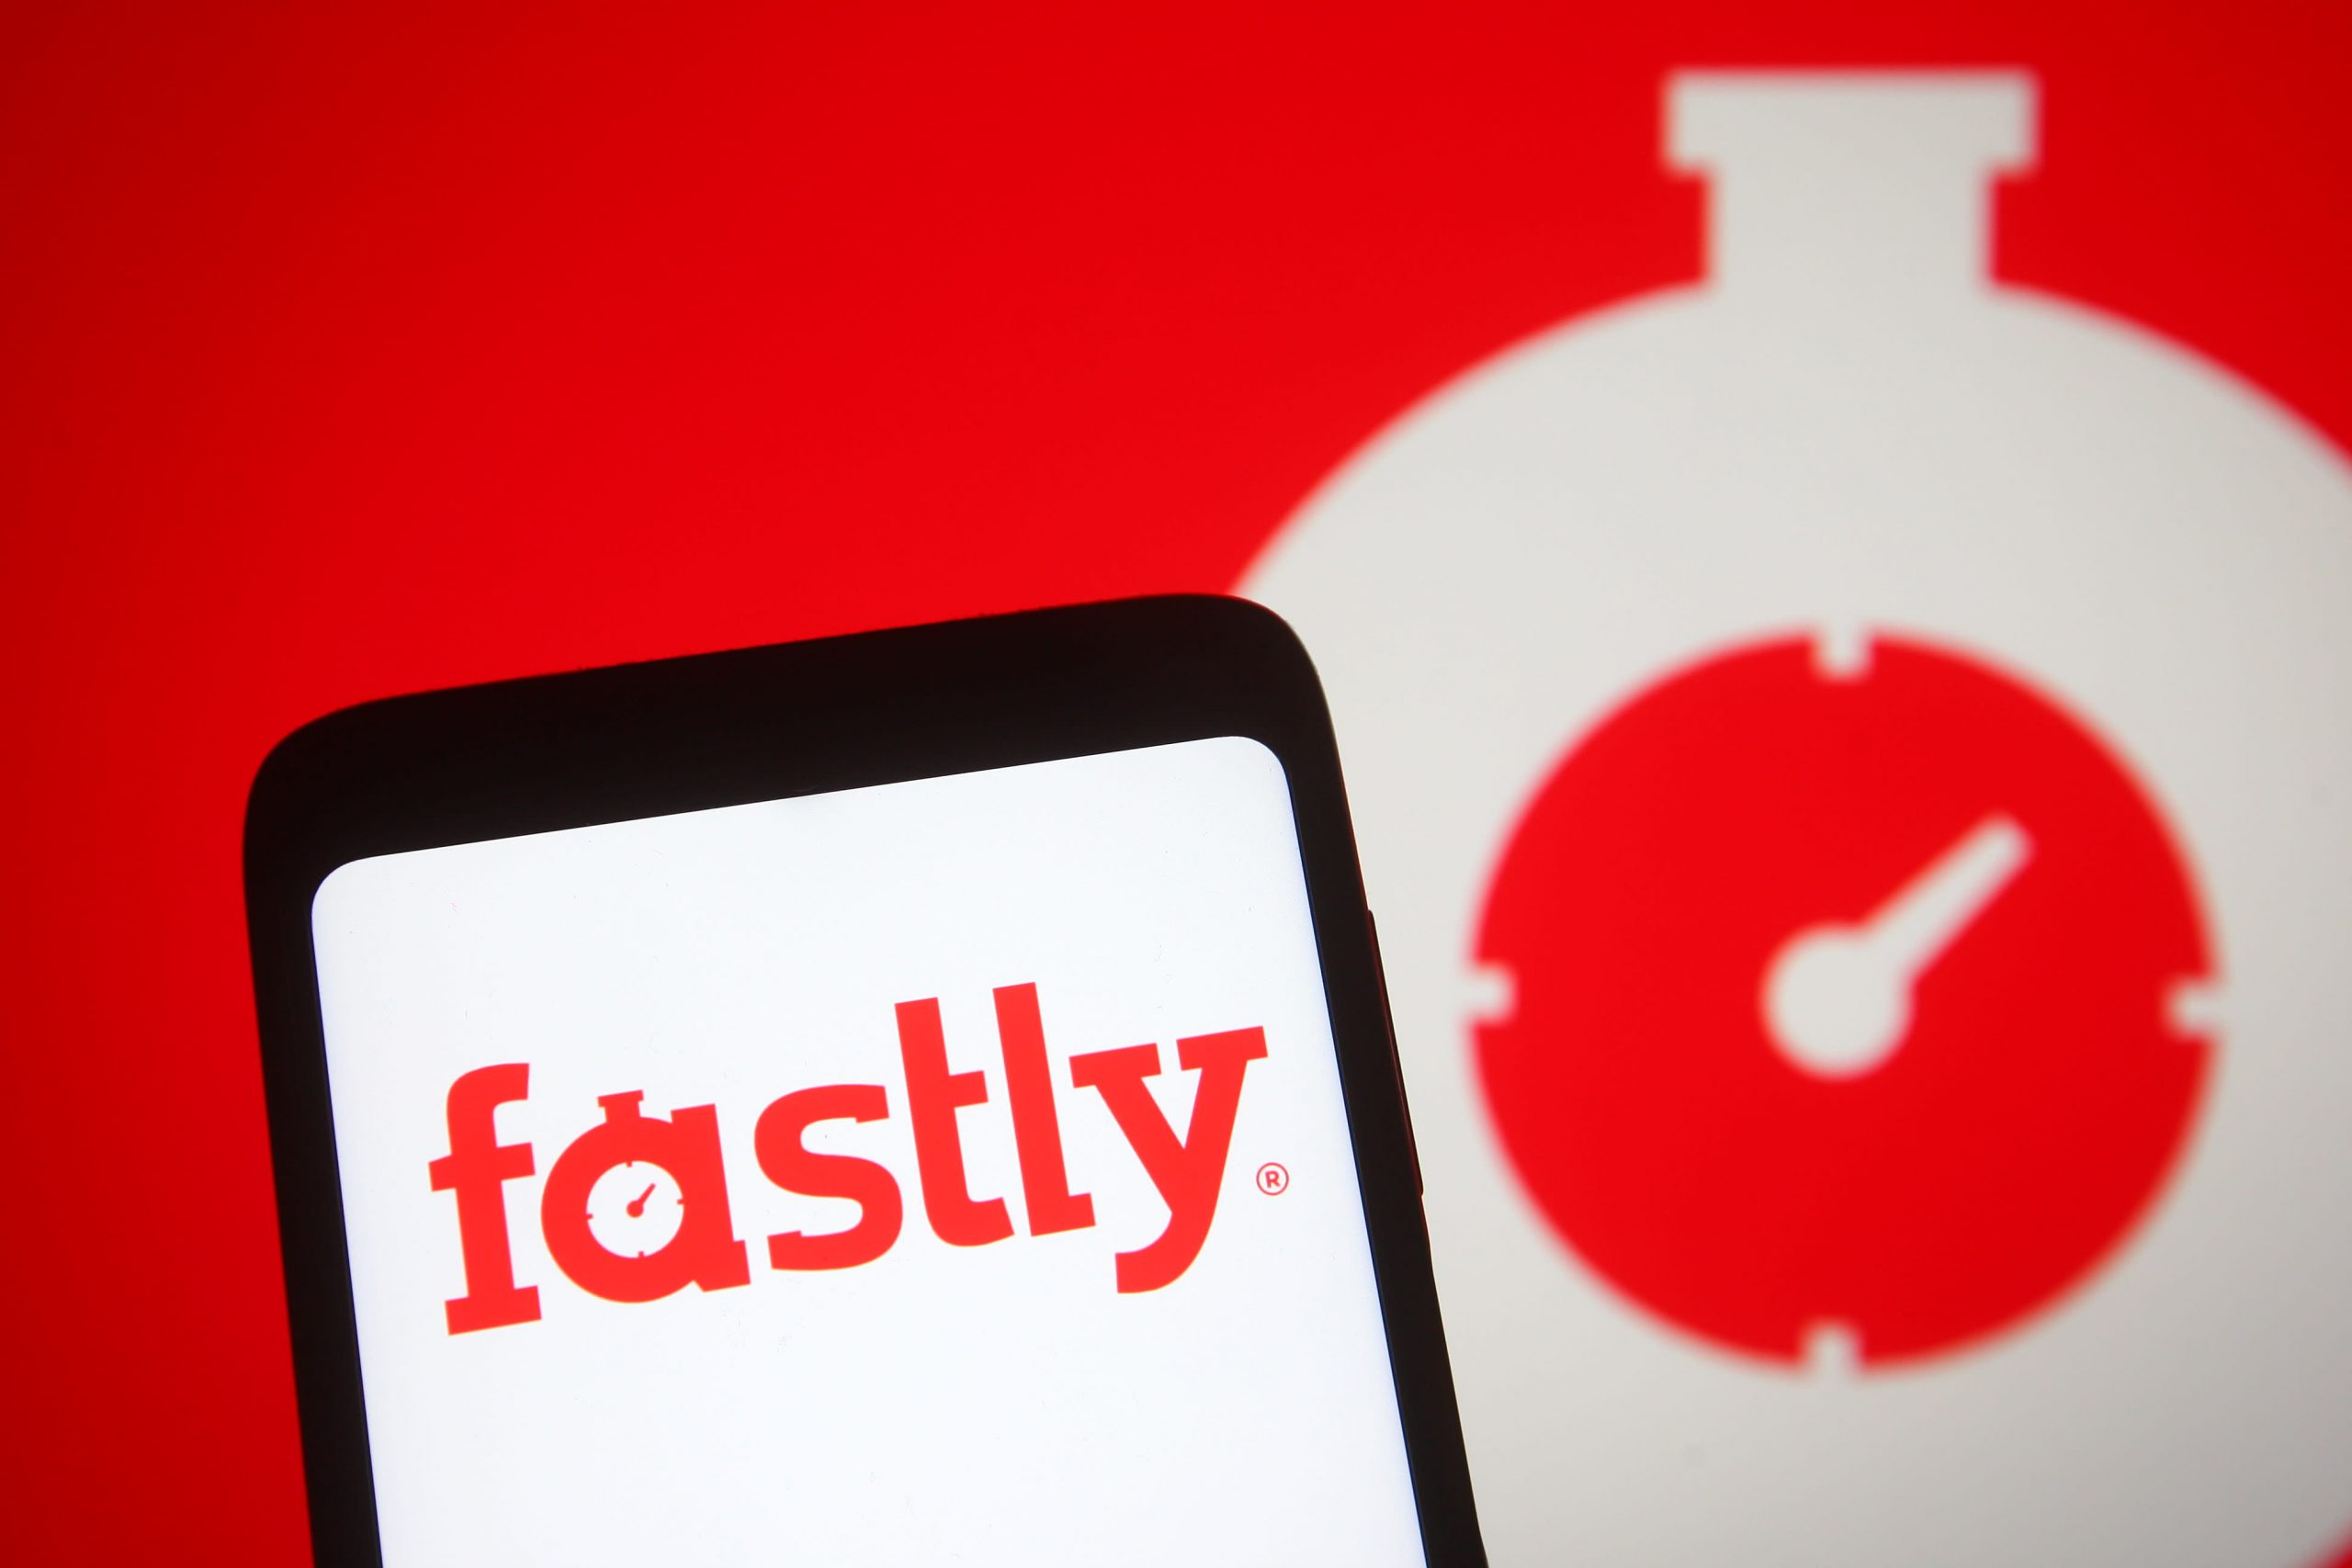 What is Fastly and why did it just take a bunch of major websites offline?